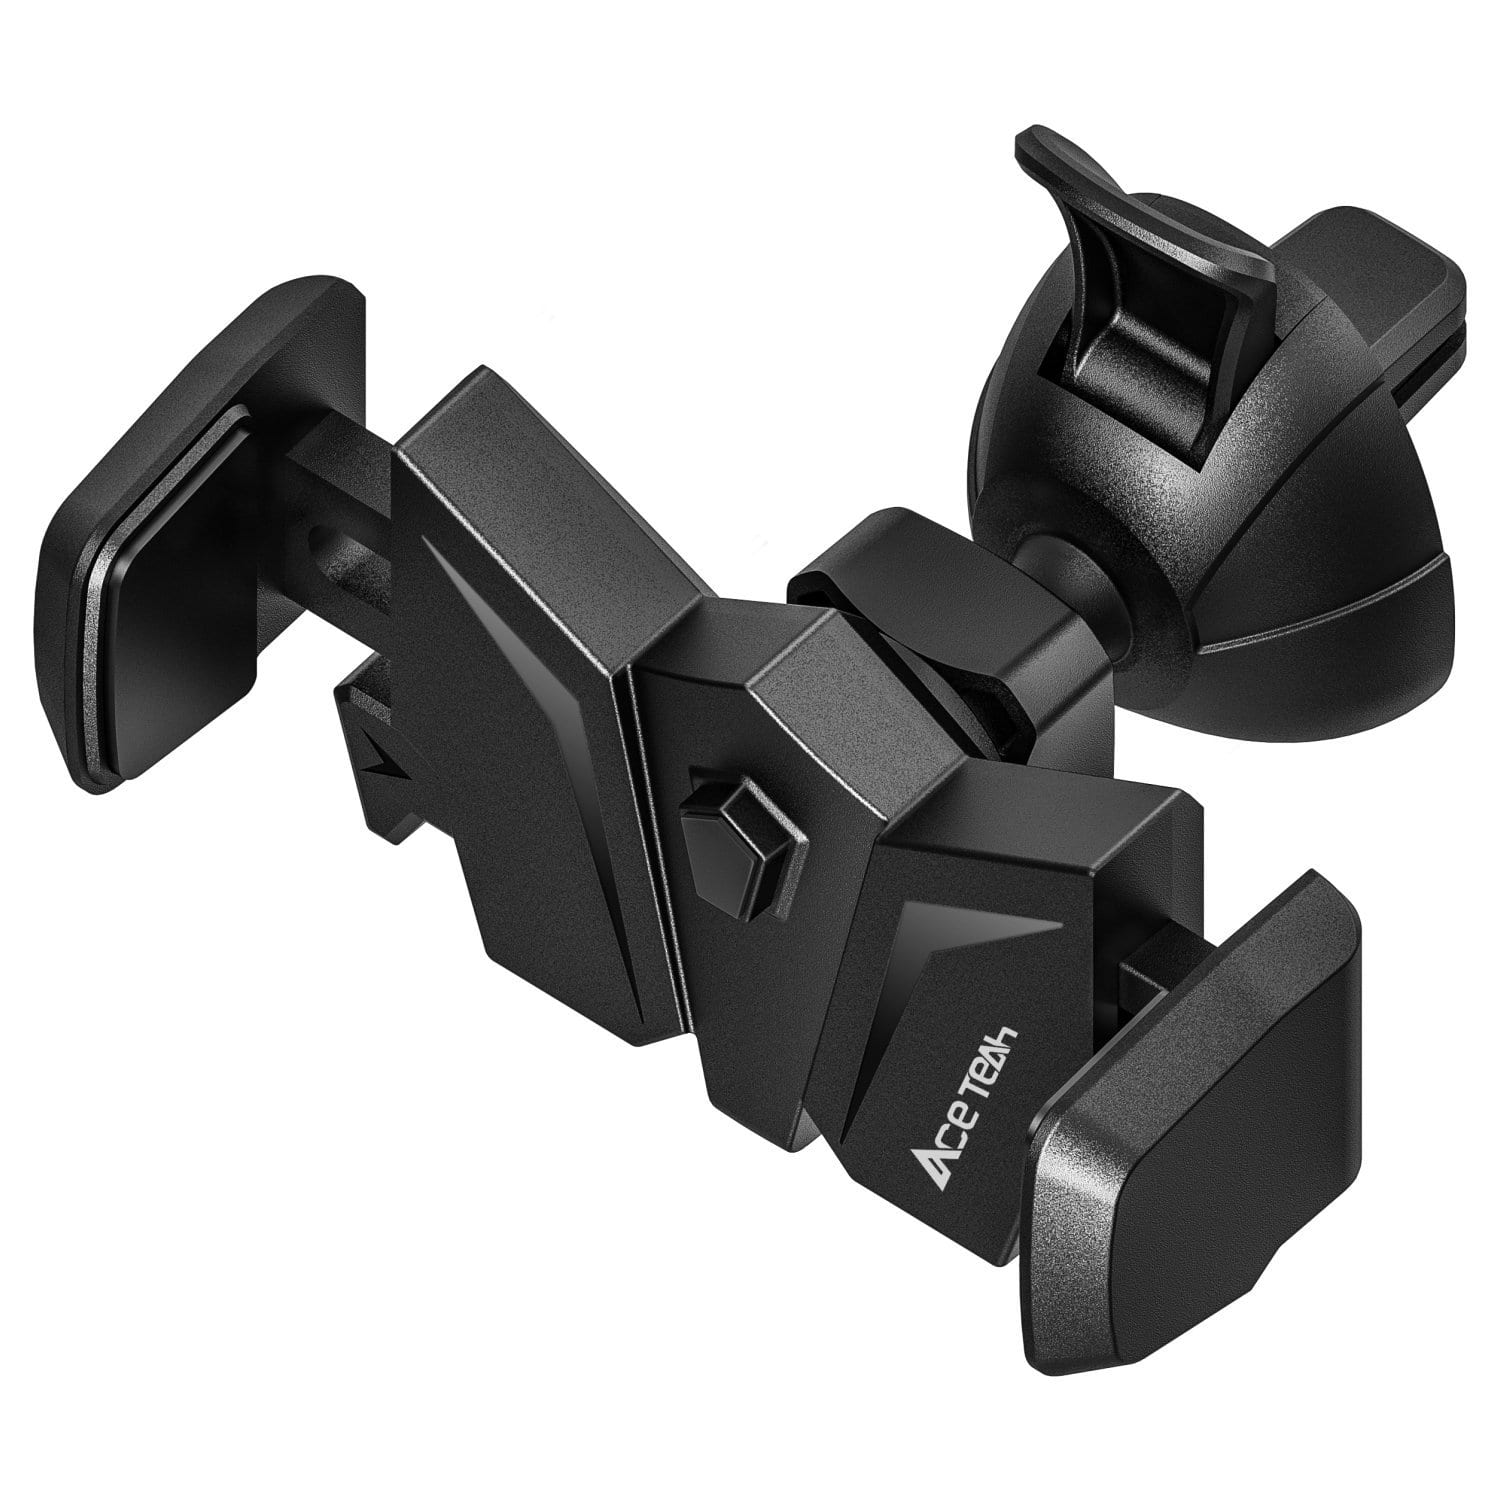 Ace Teah Universal Rotatable Air Vent Car Phone Holder $5.99 + free shipping